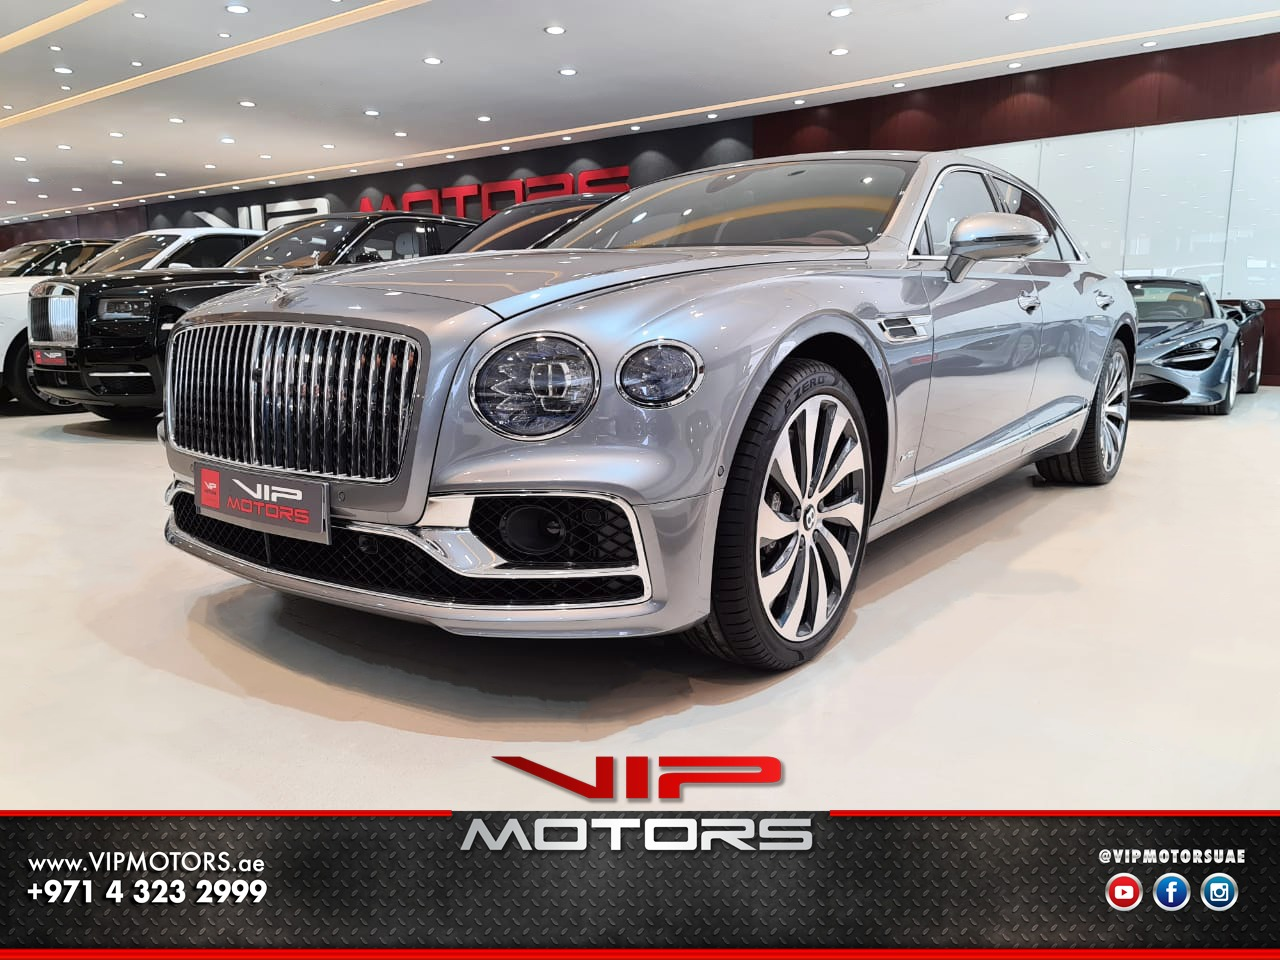 Bentley-Continental-FlyingSpur-2020-Grey-Front-Side-View-Vip-Motors